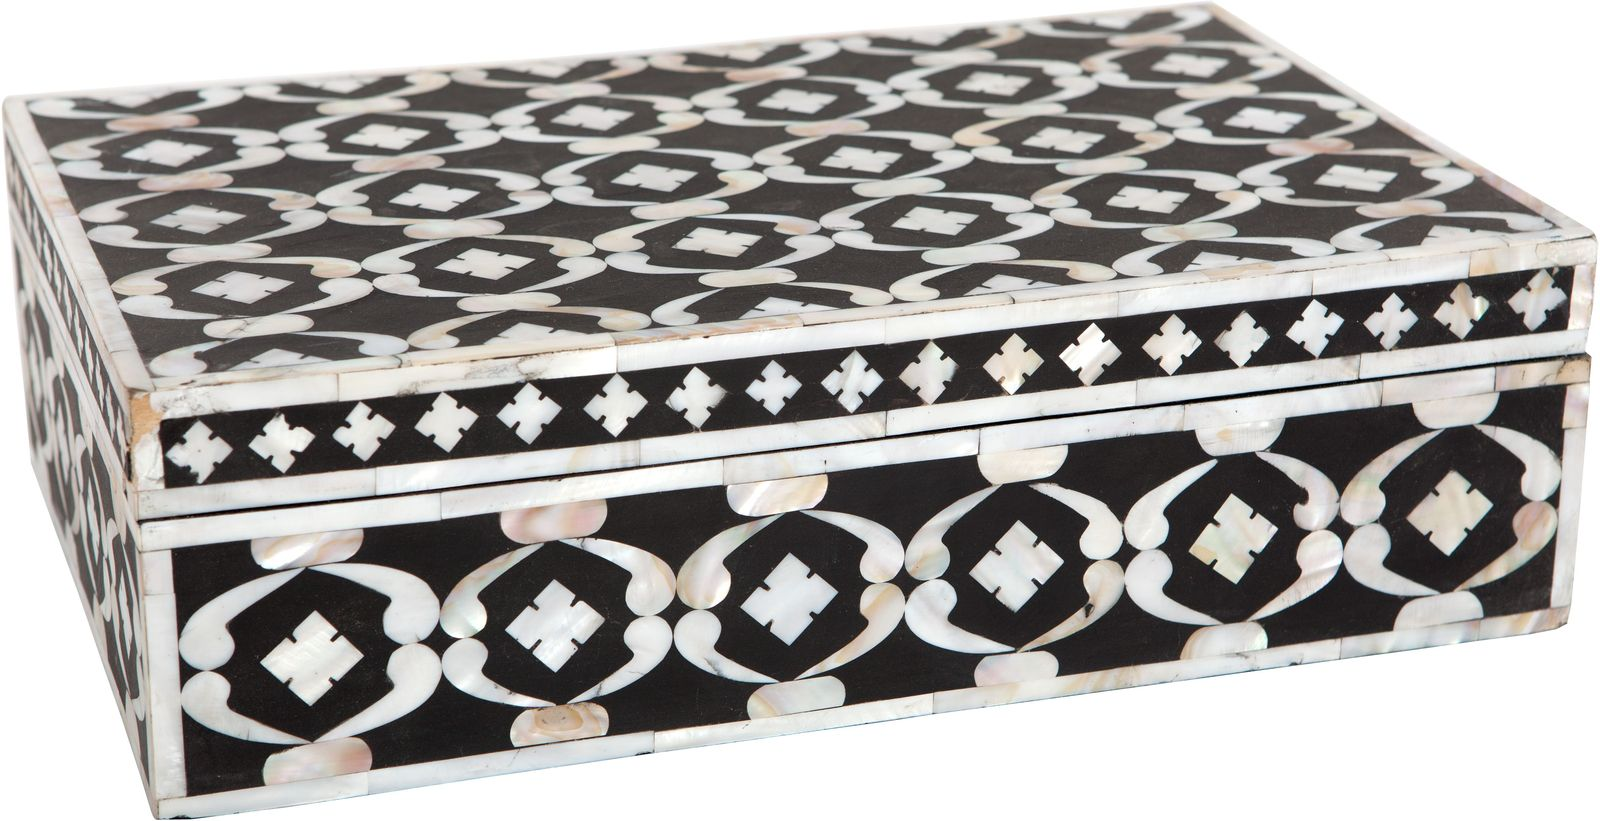 Ruby Star Traders Mother Of Pearl Inlay Box Black